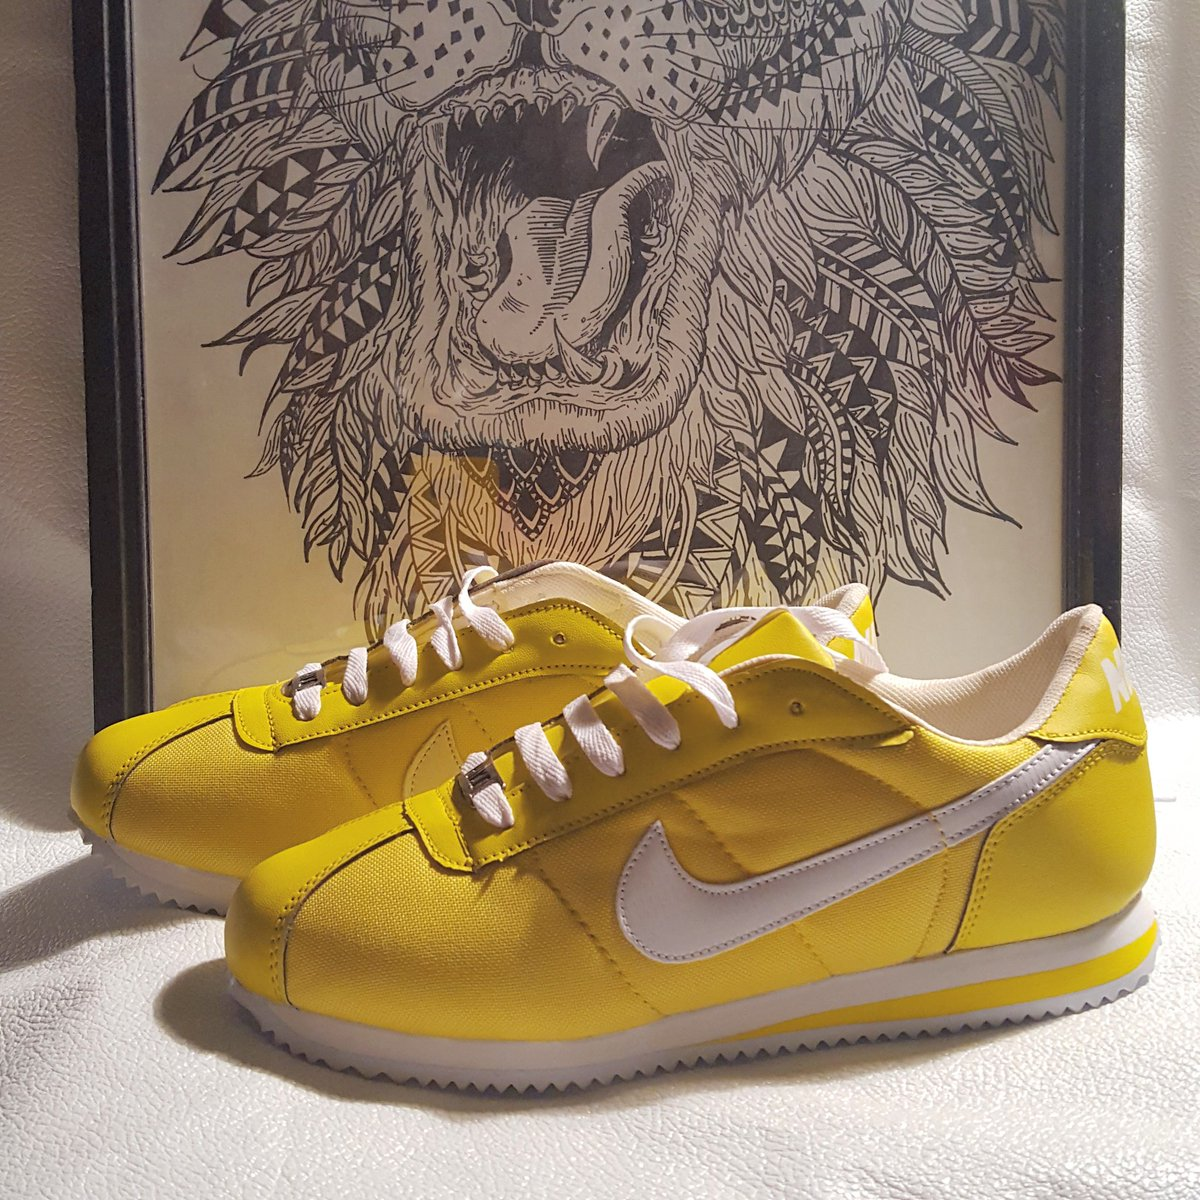 My new ones!!!  #yellow #nike #cortez #sneakers #sneakerlover #sneakerhead #coolhunter #singleandfabulous #bonitoleongto<br>http://pic.twitter.com/OA16F8X93F